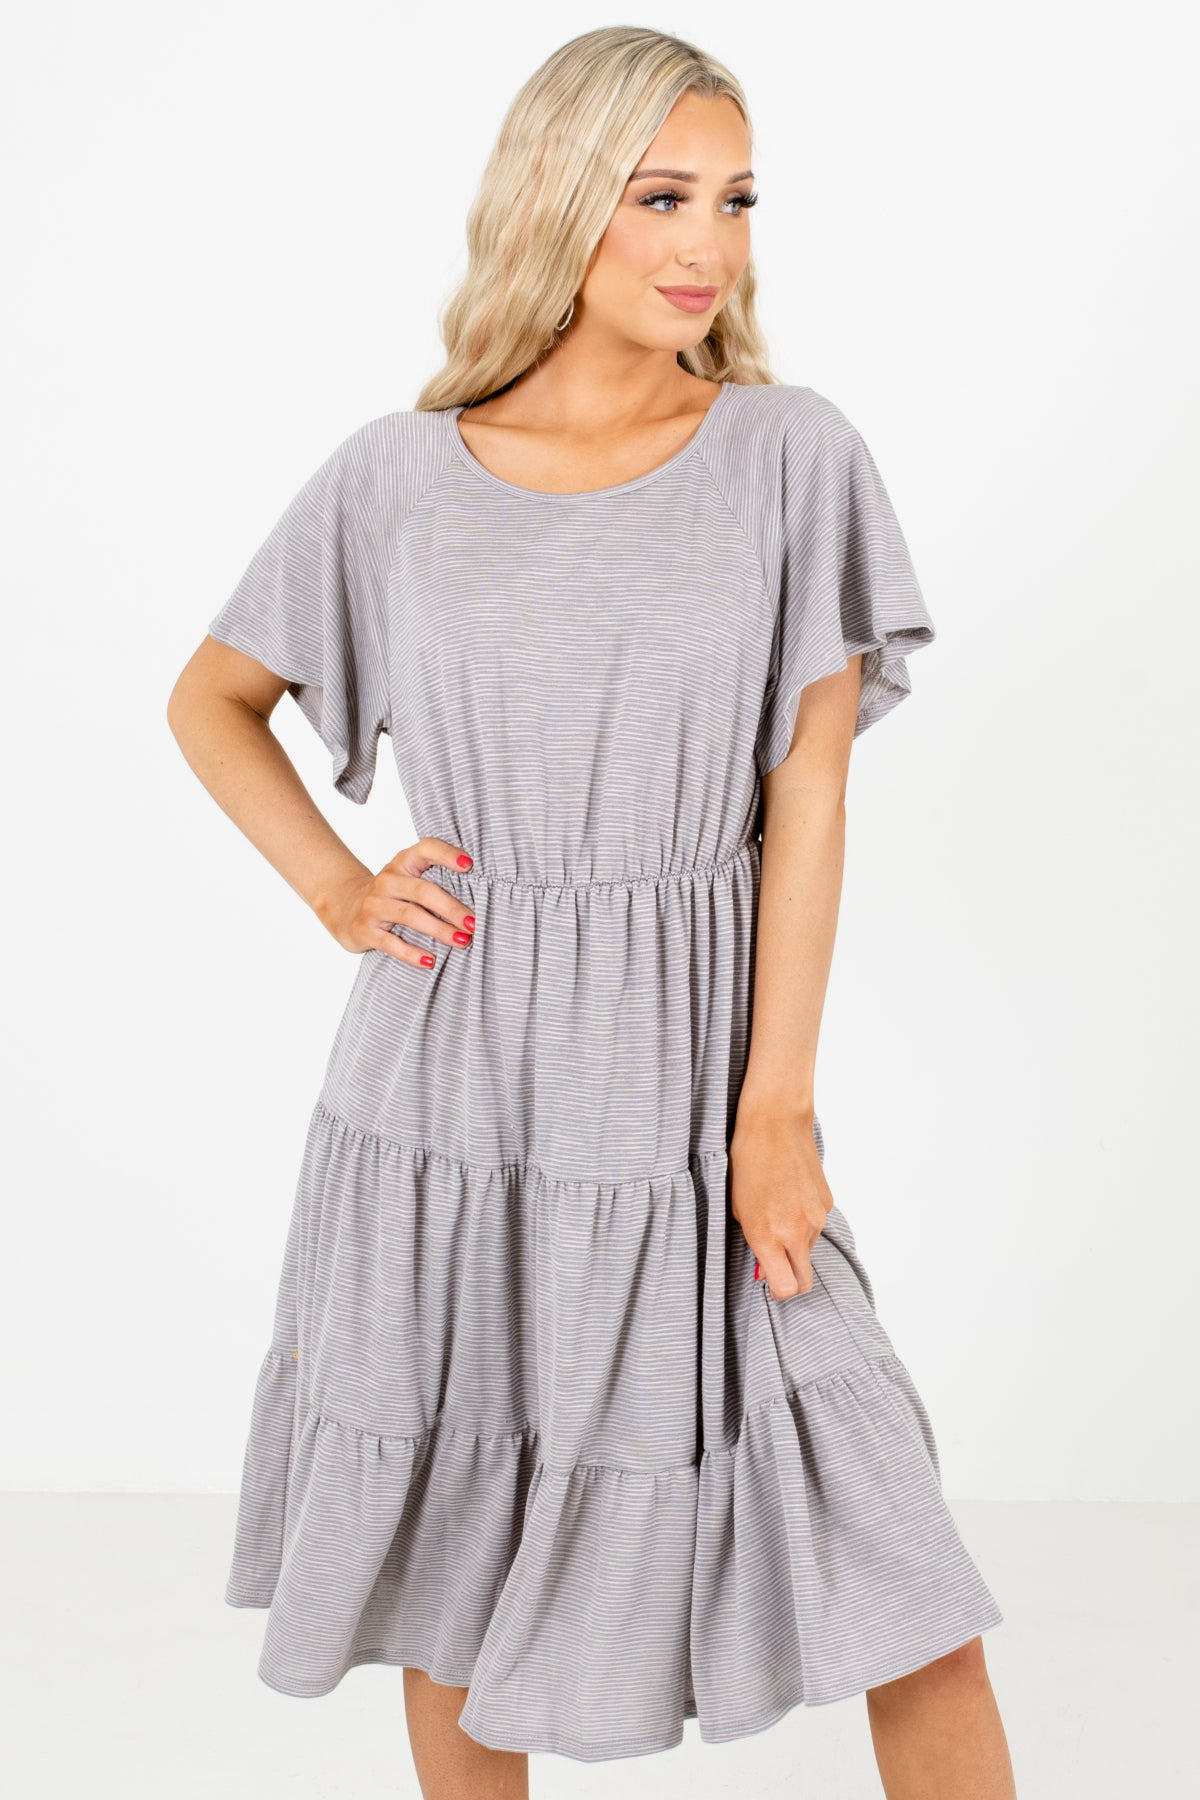 Gray Striped Boutique Knee-Length Dresses for Women